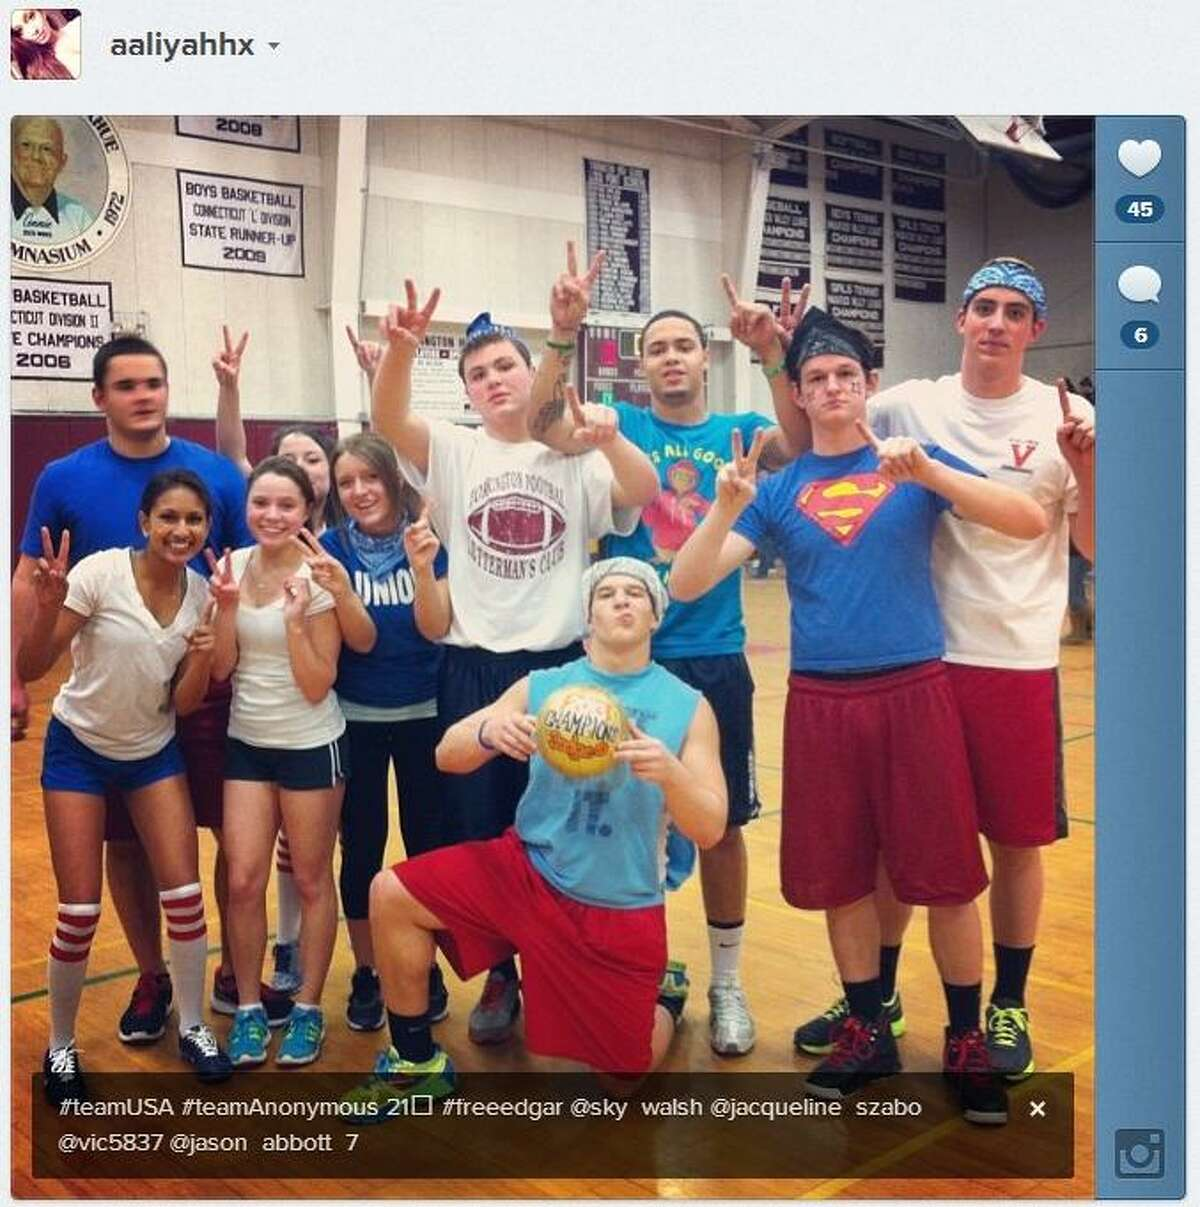 """Screenshot from Instagram. An image posted to the social photo sharing site Instagram on March 22, 2013, shows students in the Torrington High School gymnasium flashing a hand gesture for Edgar Gonzalez's football jersey number, """"21."""" The image also carried the hashtag """"FreeEdgar."""" Based on the pictured """"2013 Champions"""" dodgeball, the photo was likely taken following the dodgeball tournament held earlier that evening."""